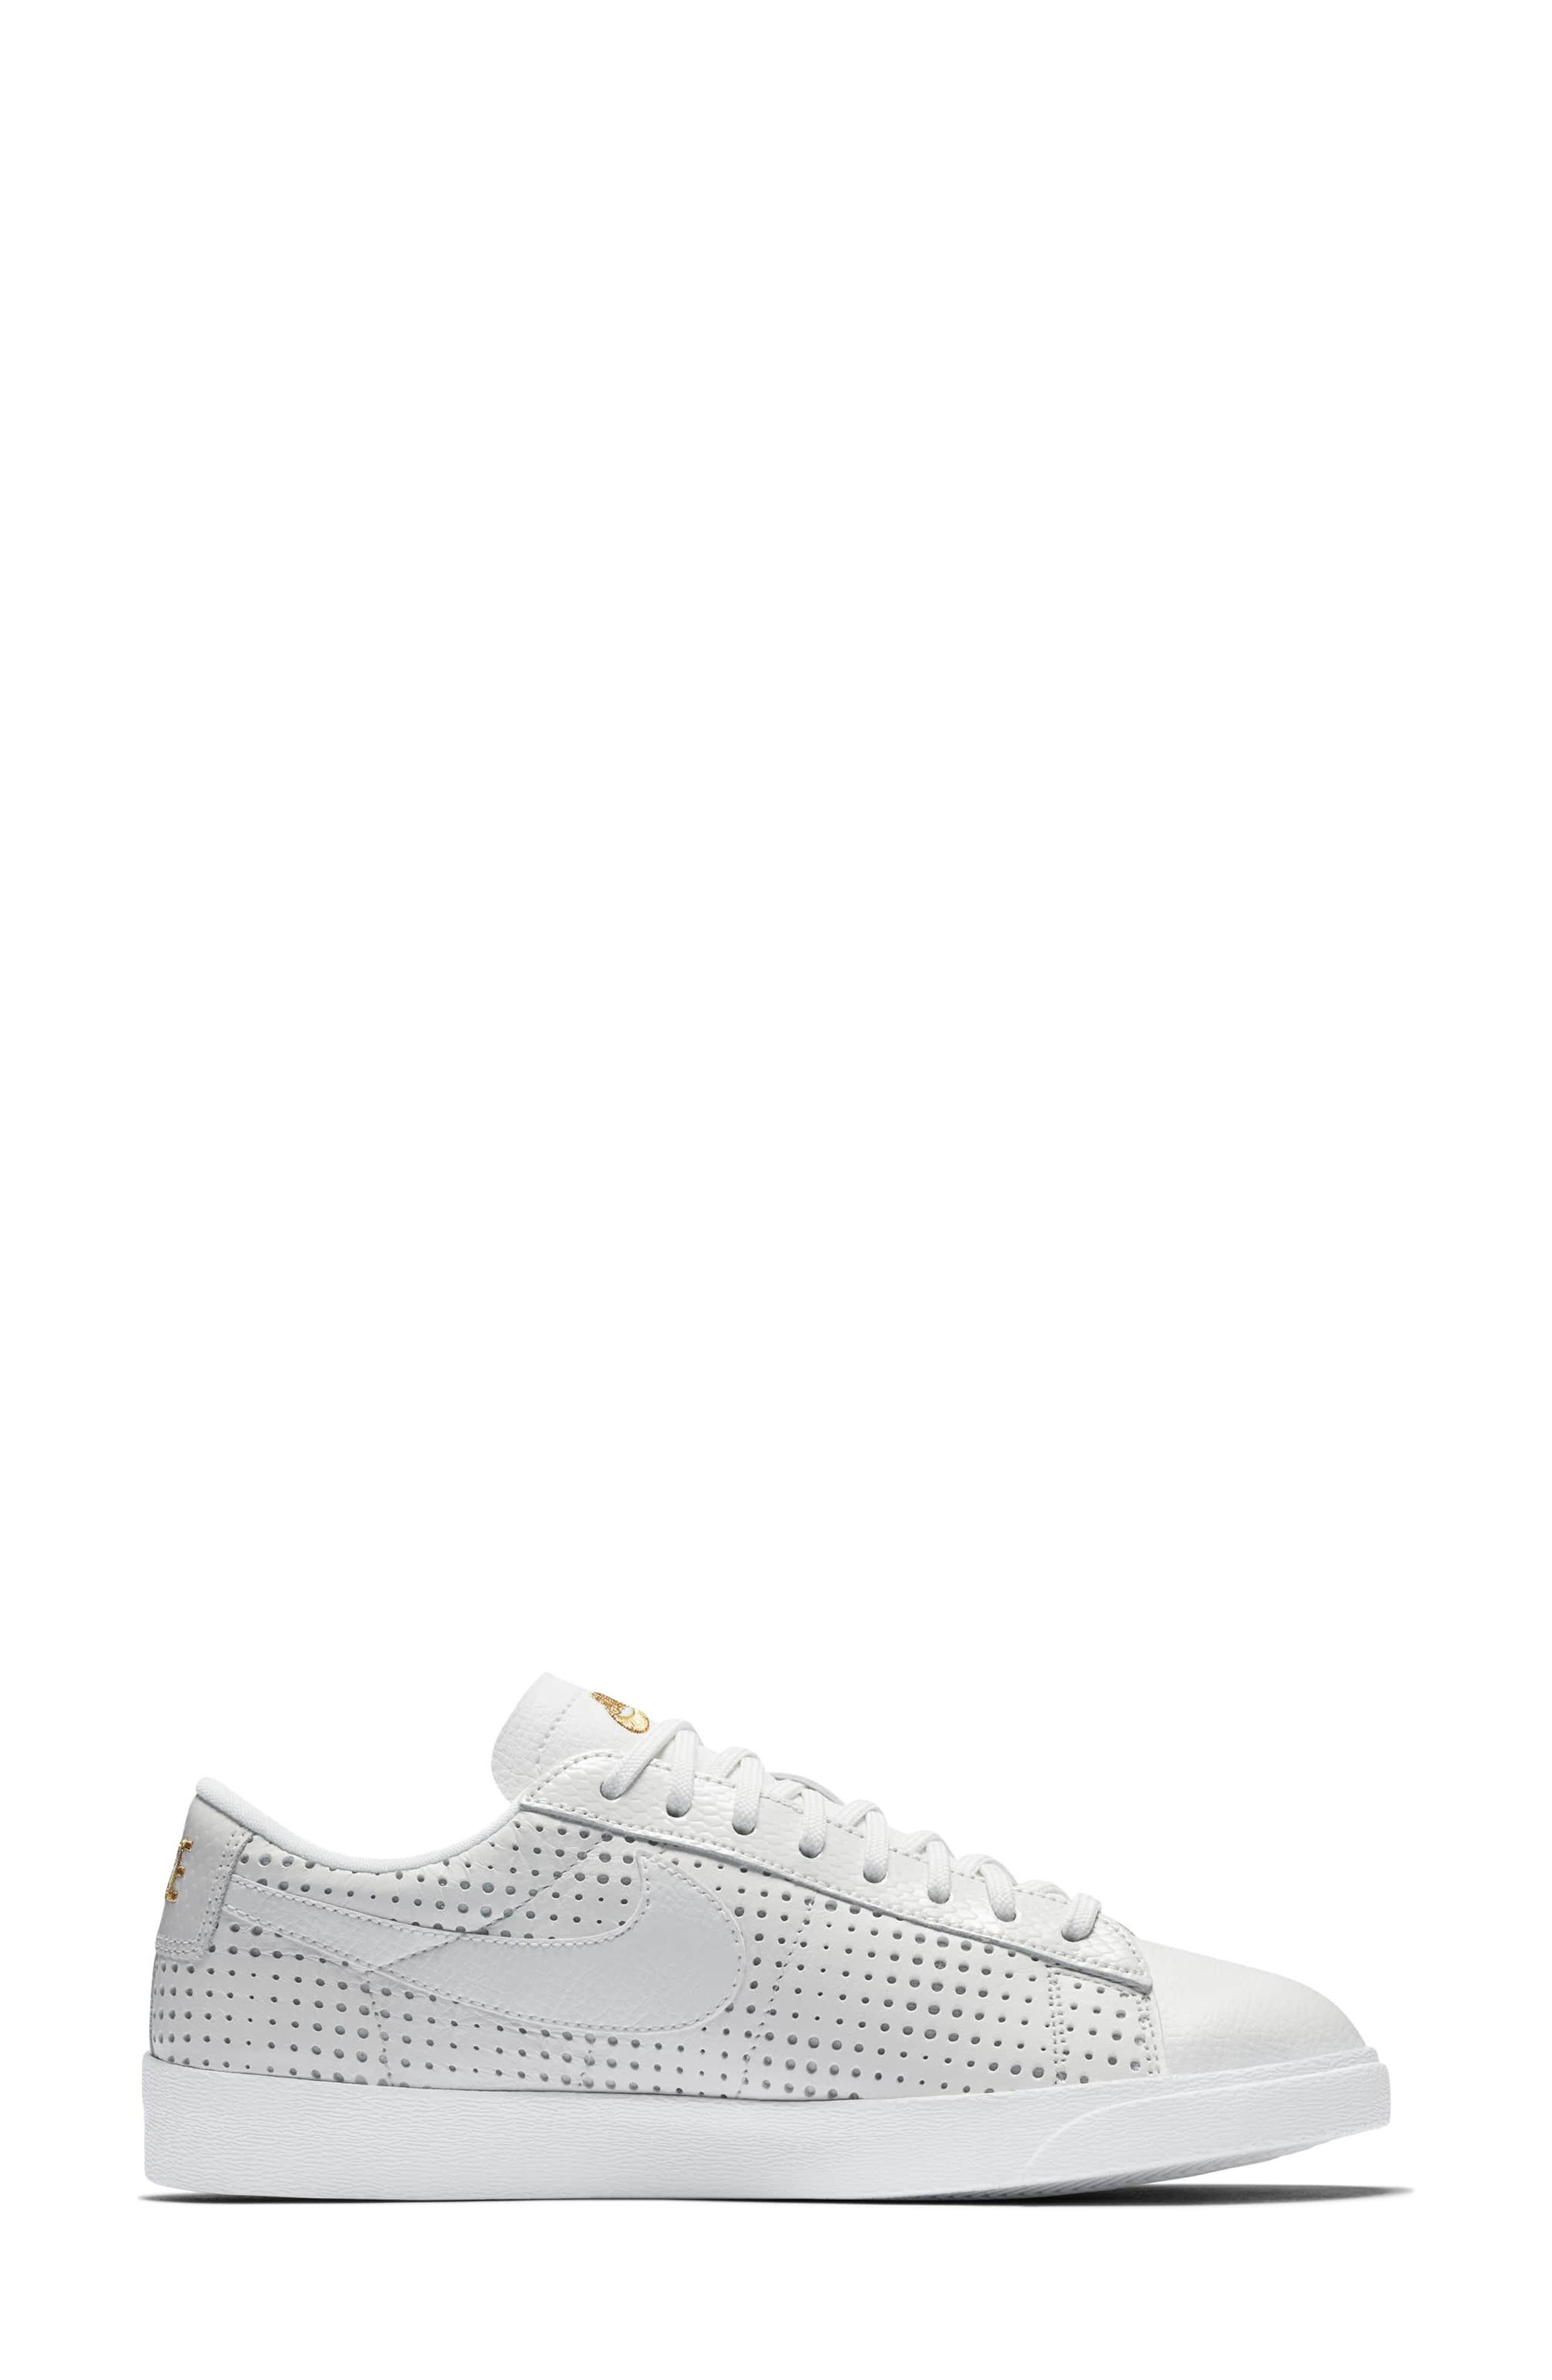 Alternate Image 1 Selected - Nike Blazer Low Top Sneaker SE (Women)